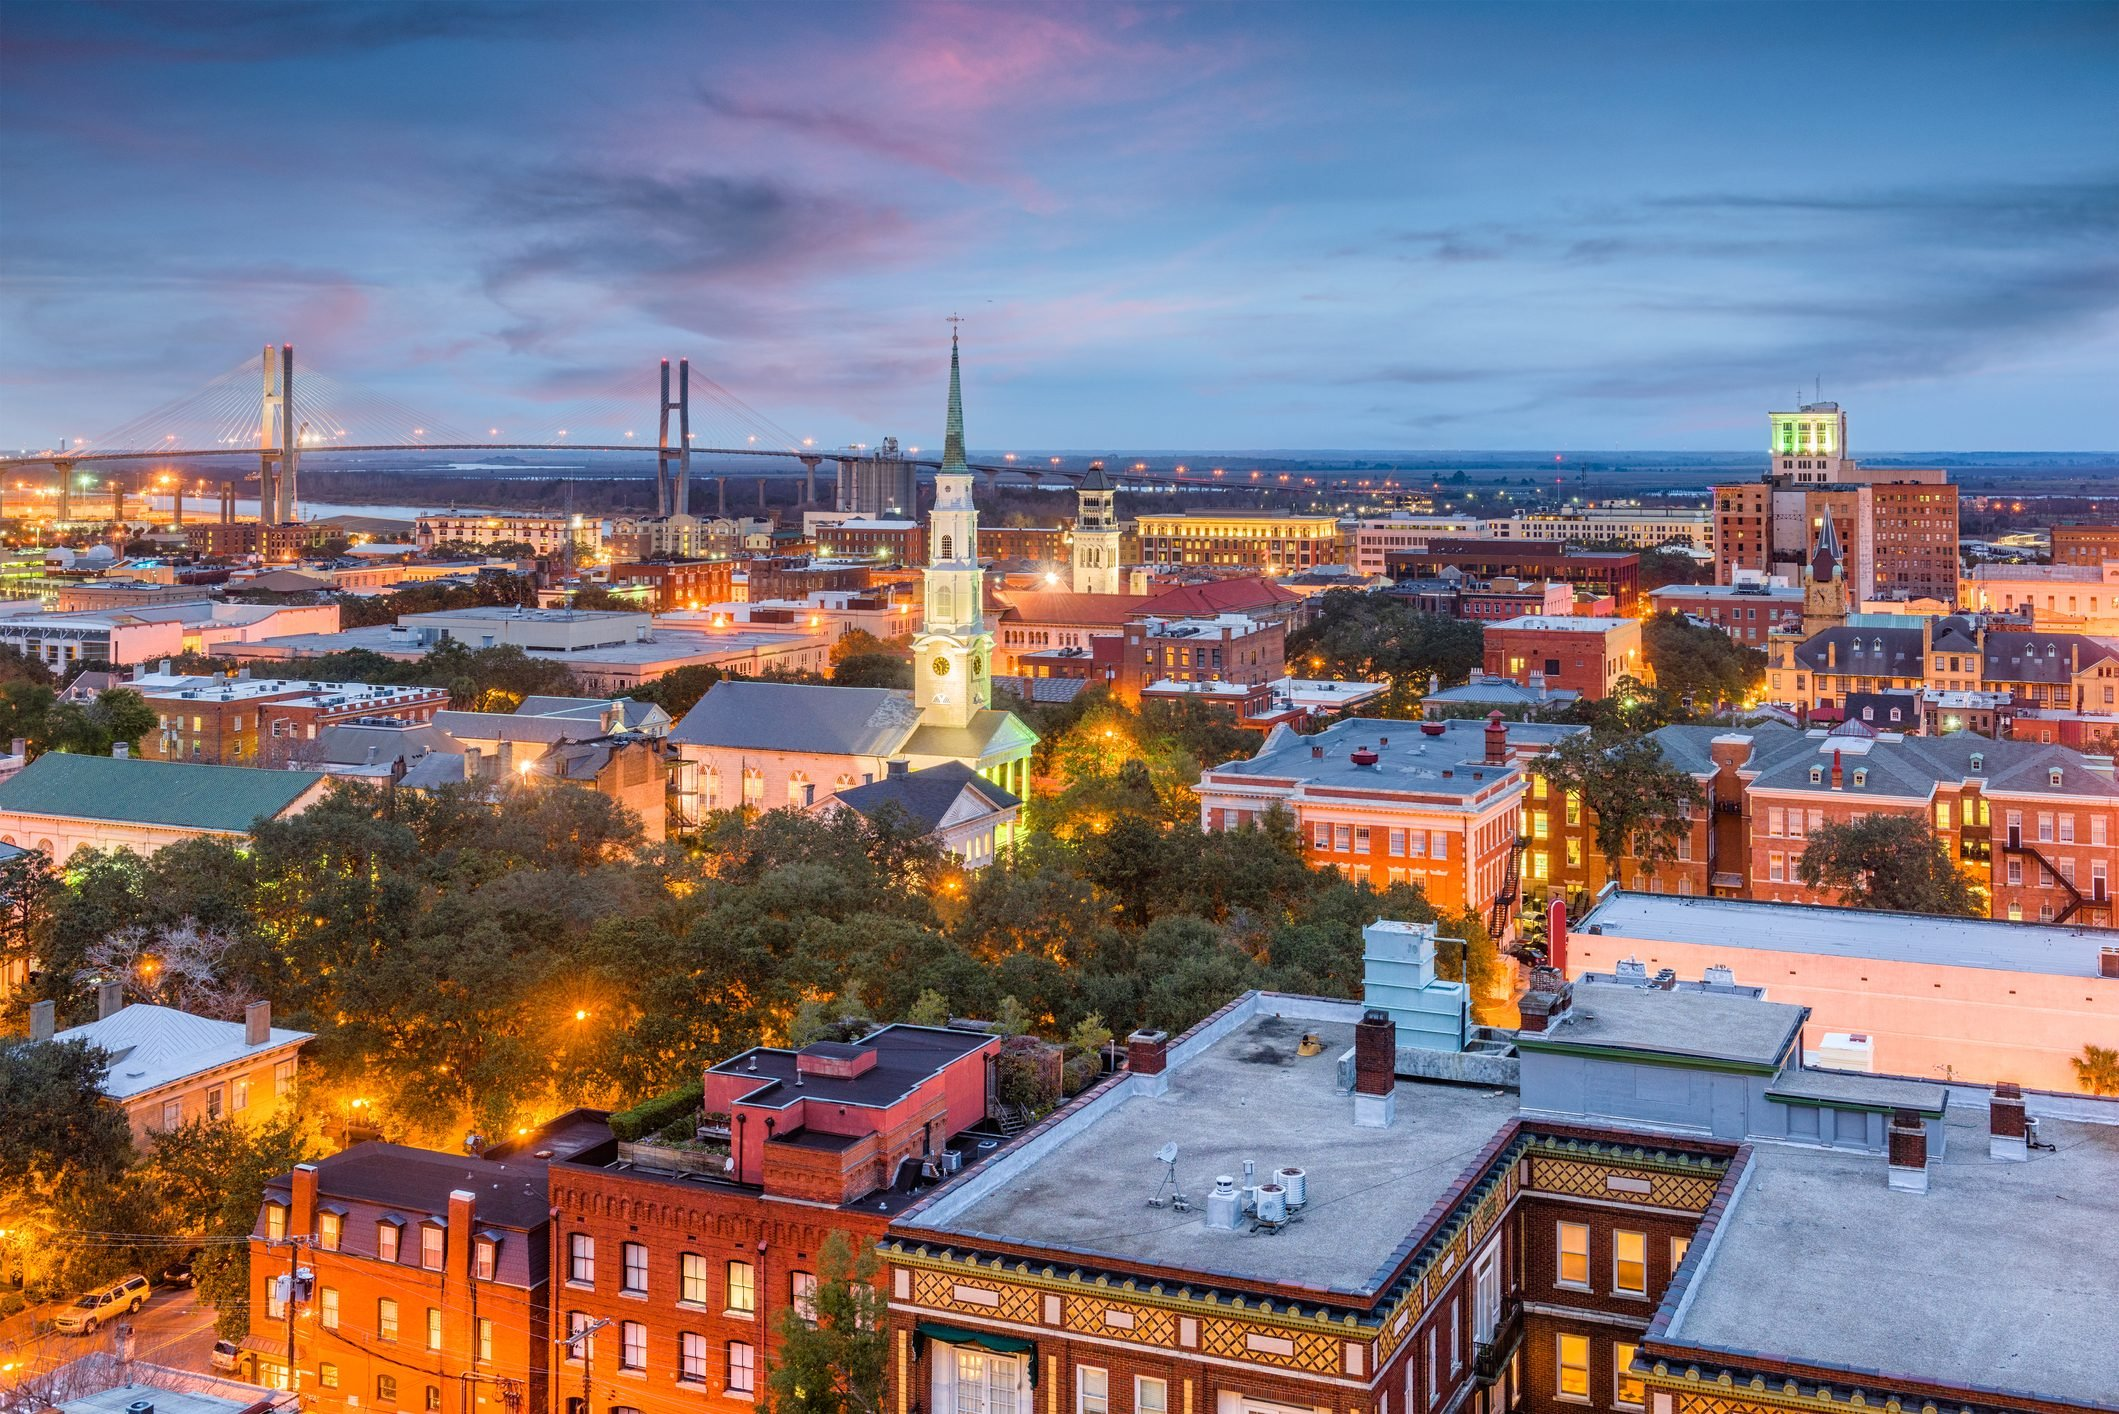 Savannah, Georgia, USA Skyline